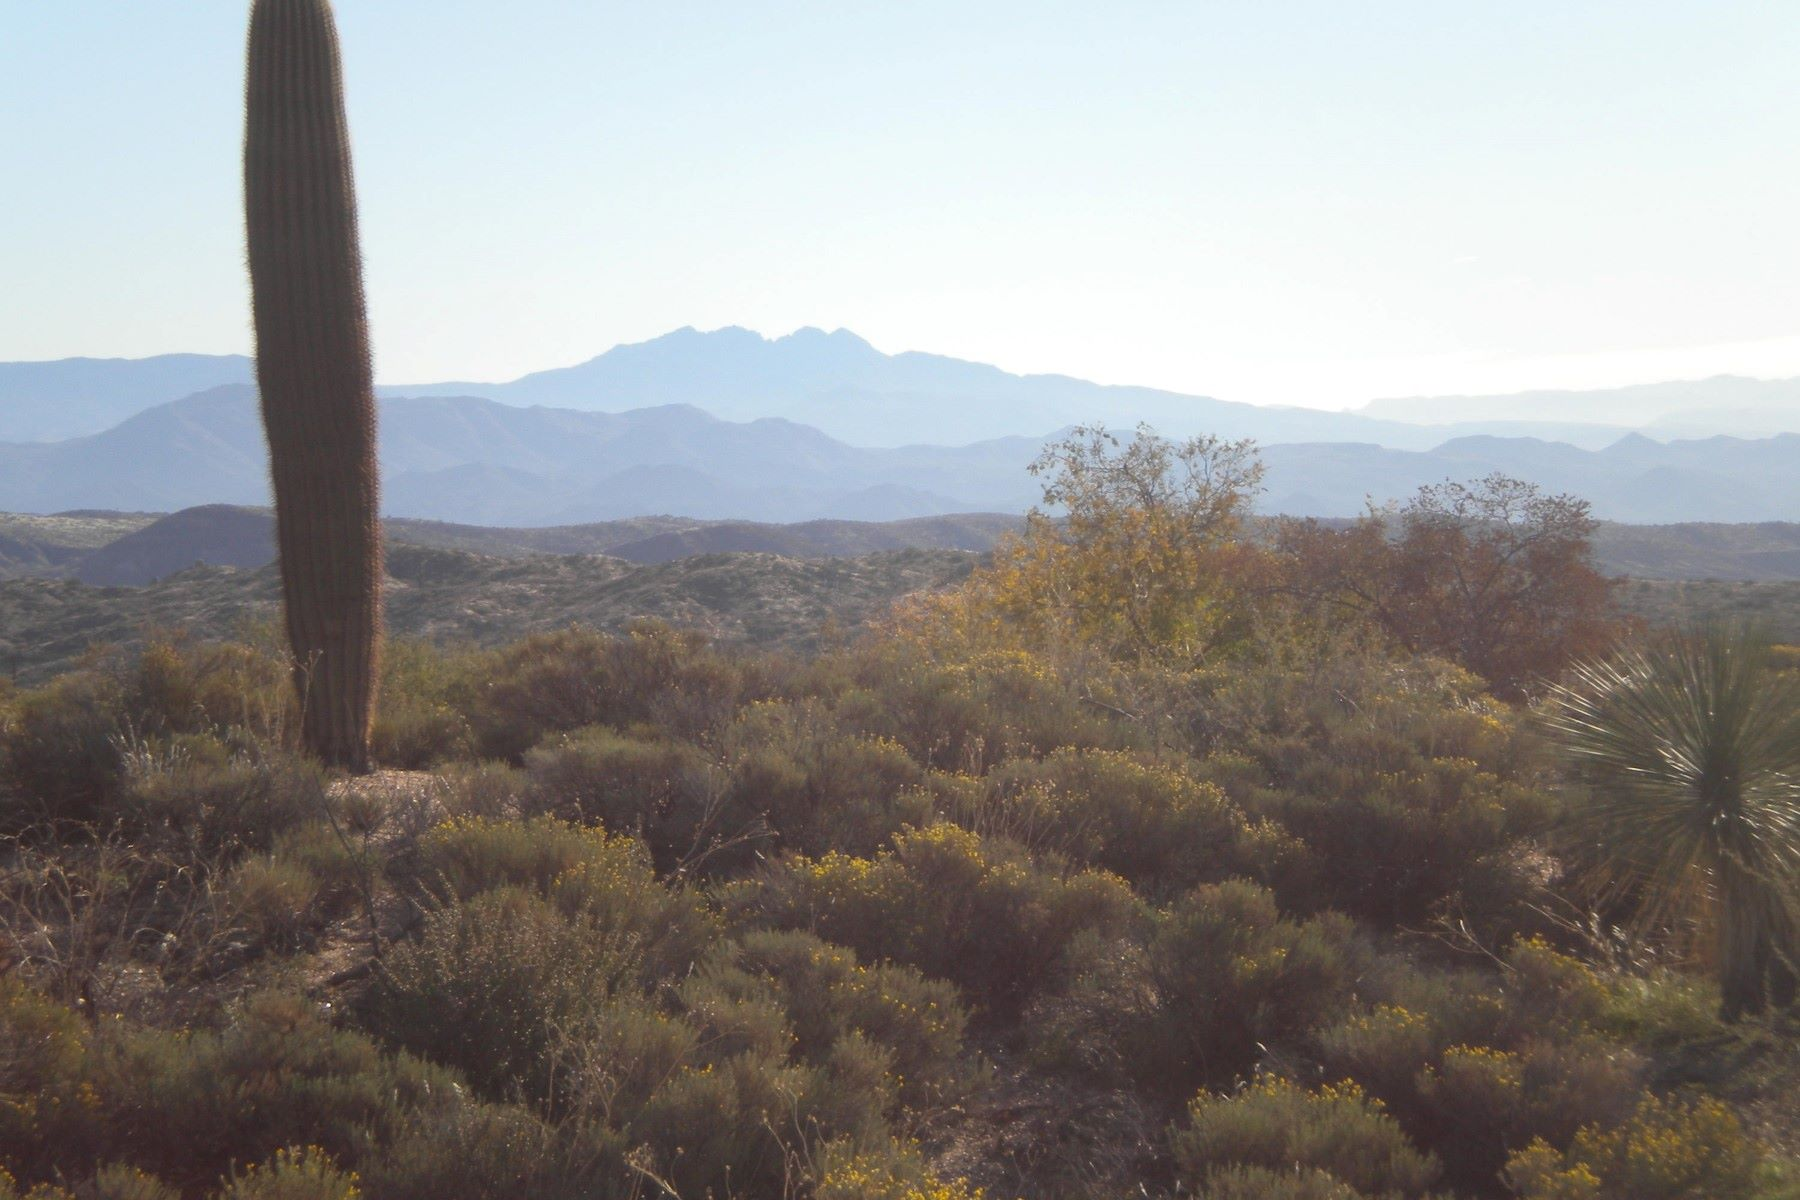 Land for Sale at Terrific 1.79 acre view lot in tonto hills 42360 N Deer Trail Rd #156, Cave Creek, Arizona, 85331 United States